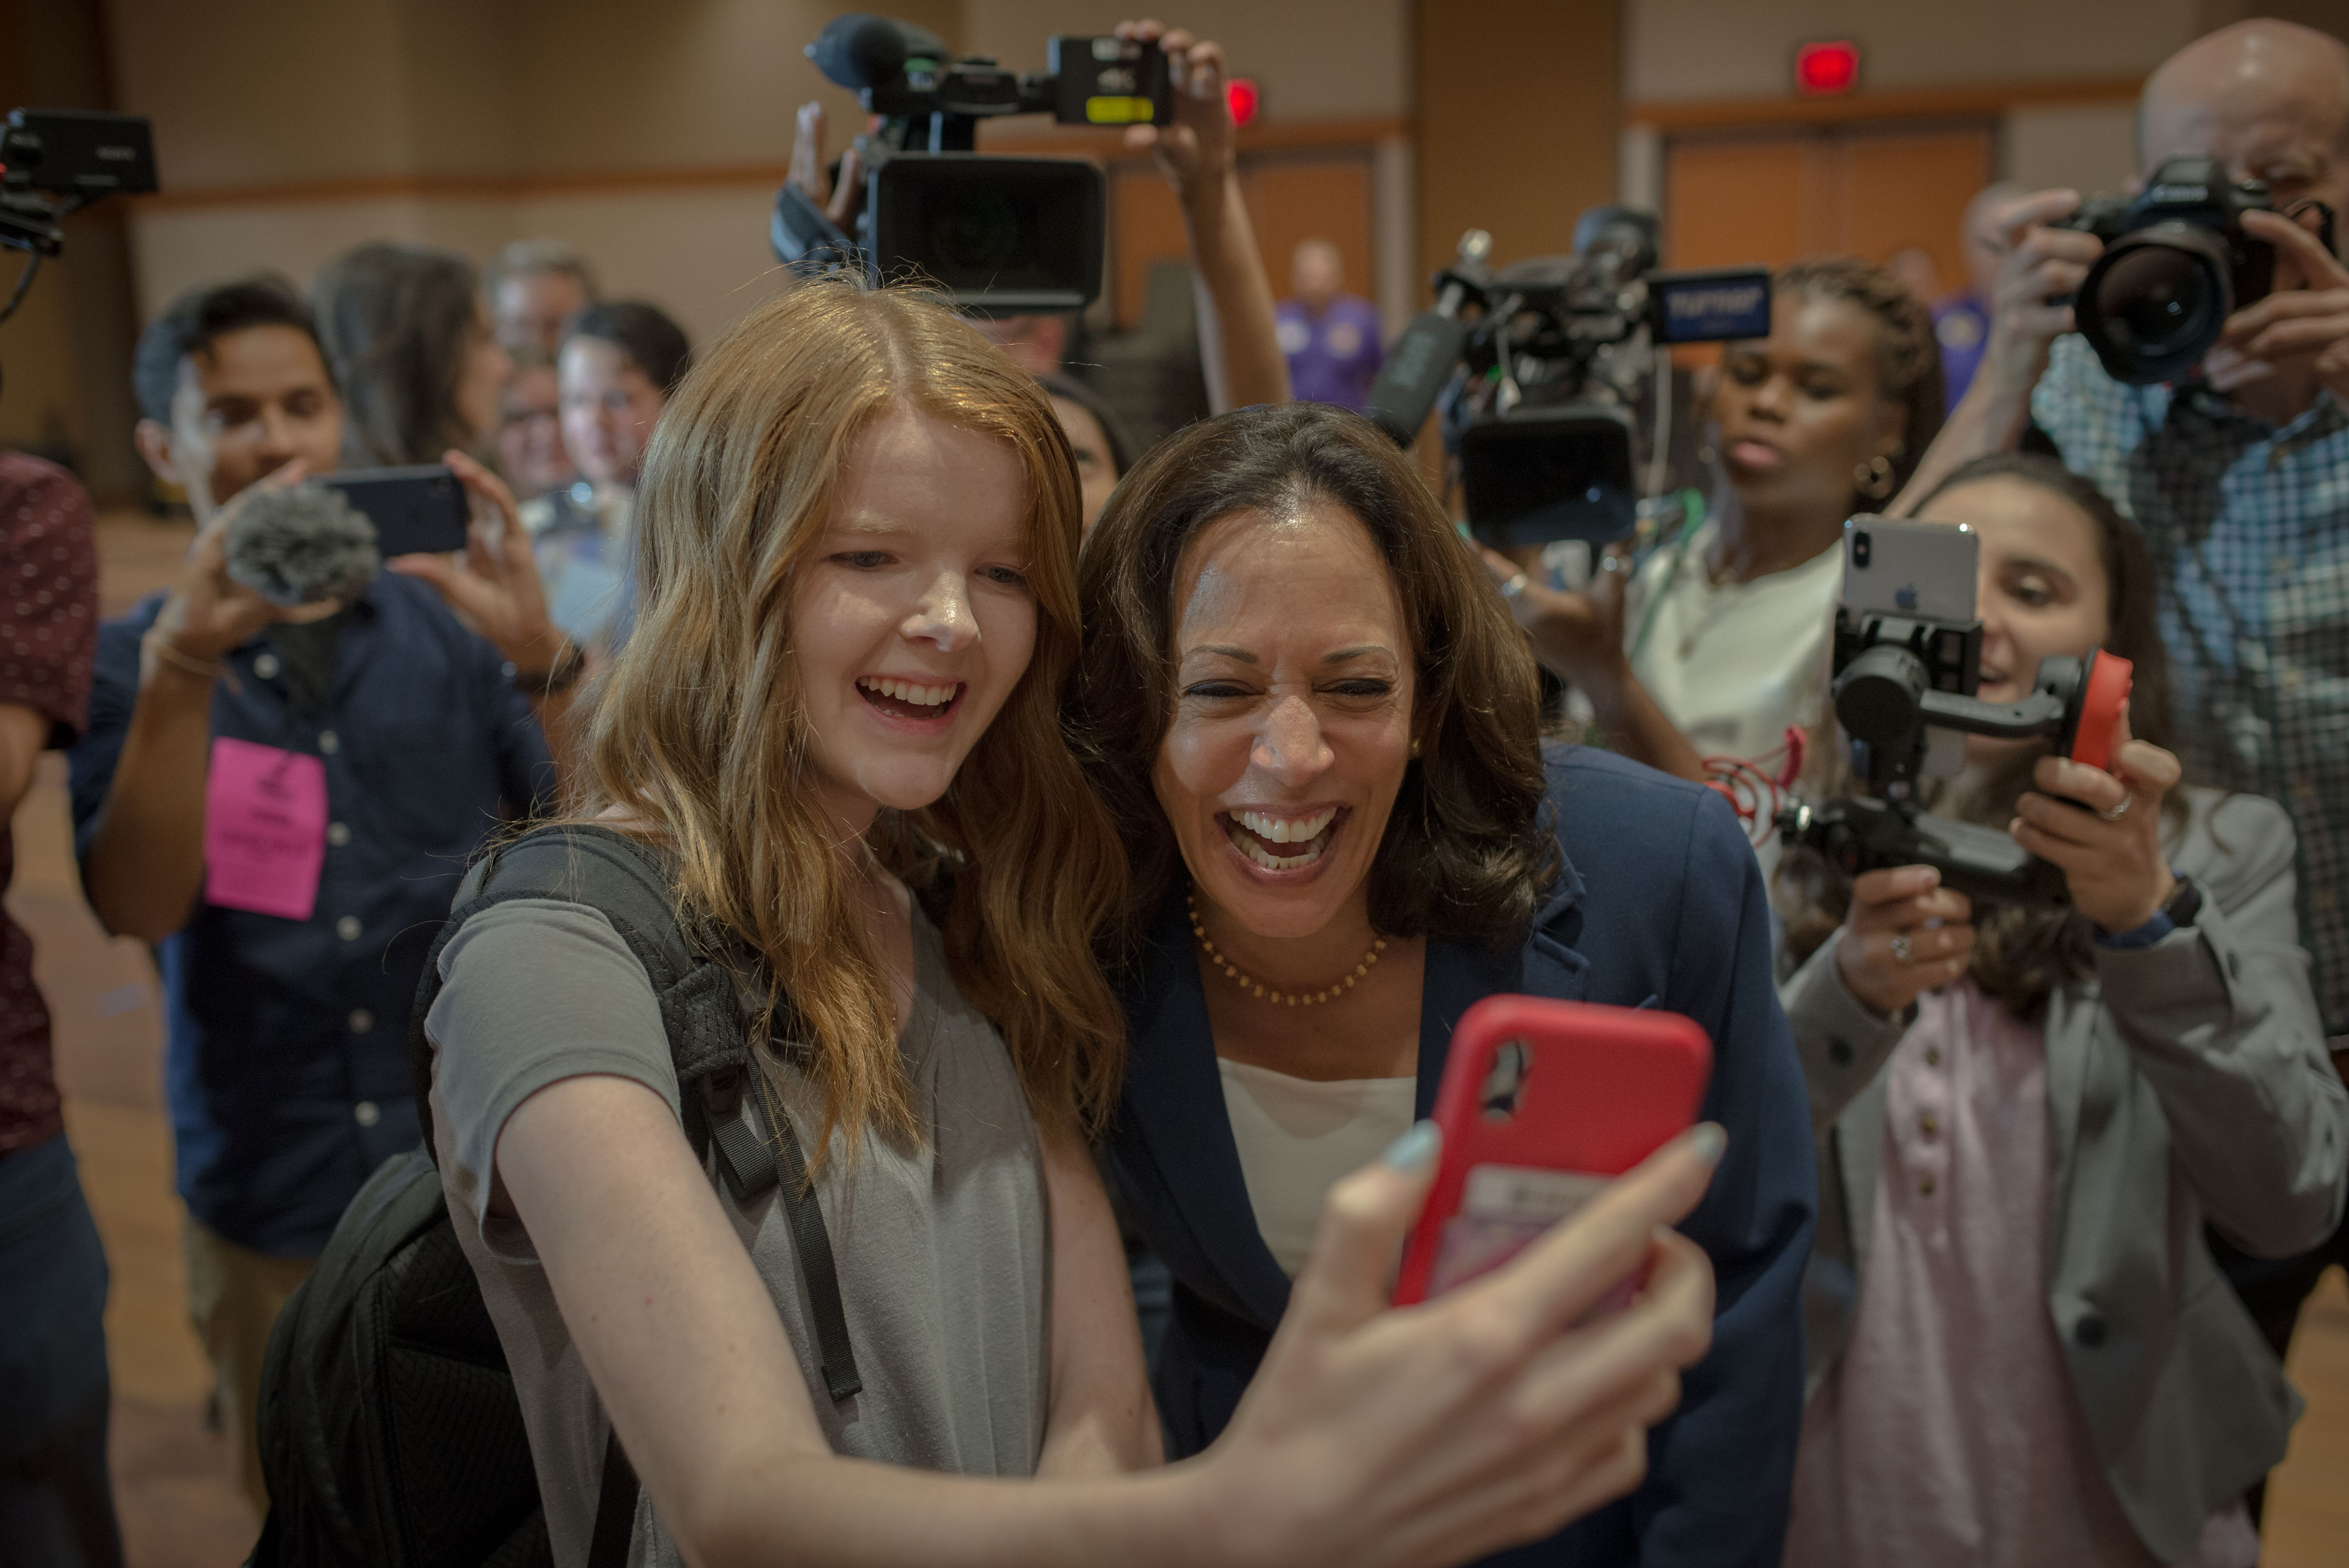 Why Kamala Harris Is Struggling To Find Her Footing Time